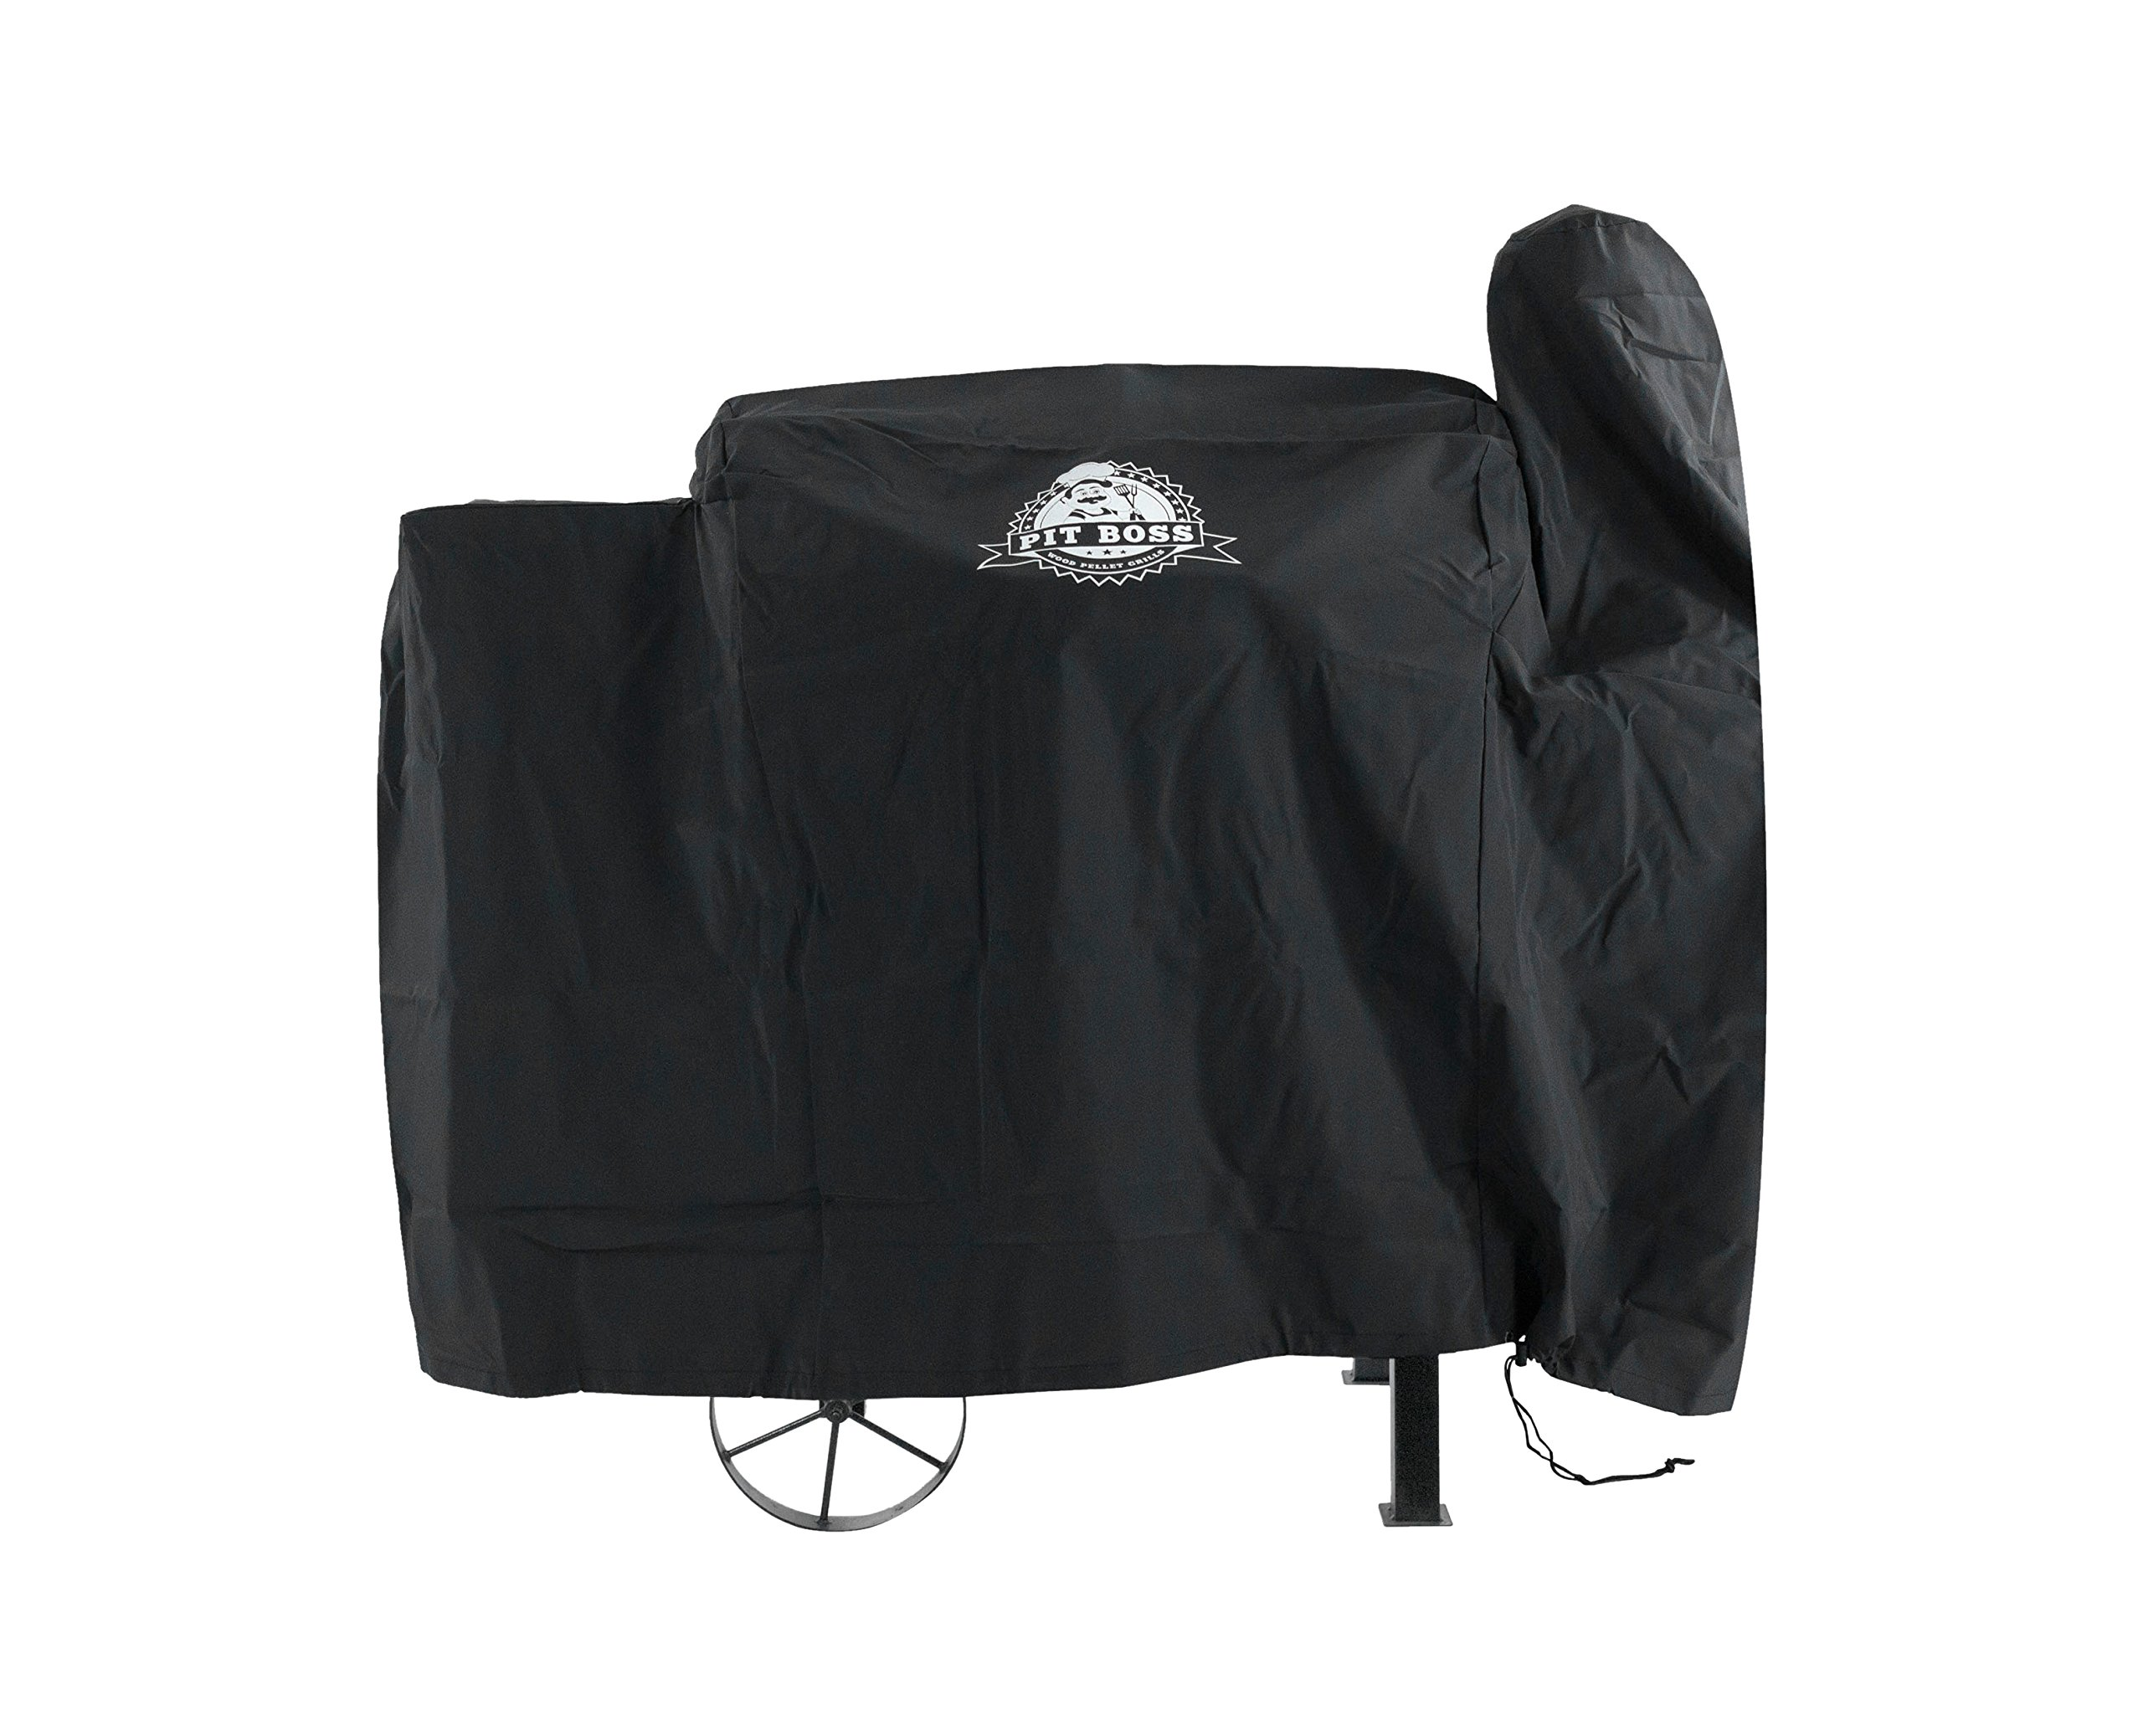 Pit Boss Grills 820 Grill Cover by Pit Boss Grills